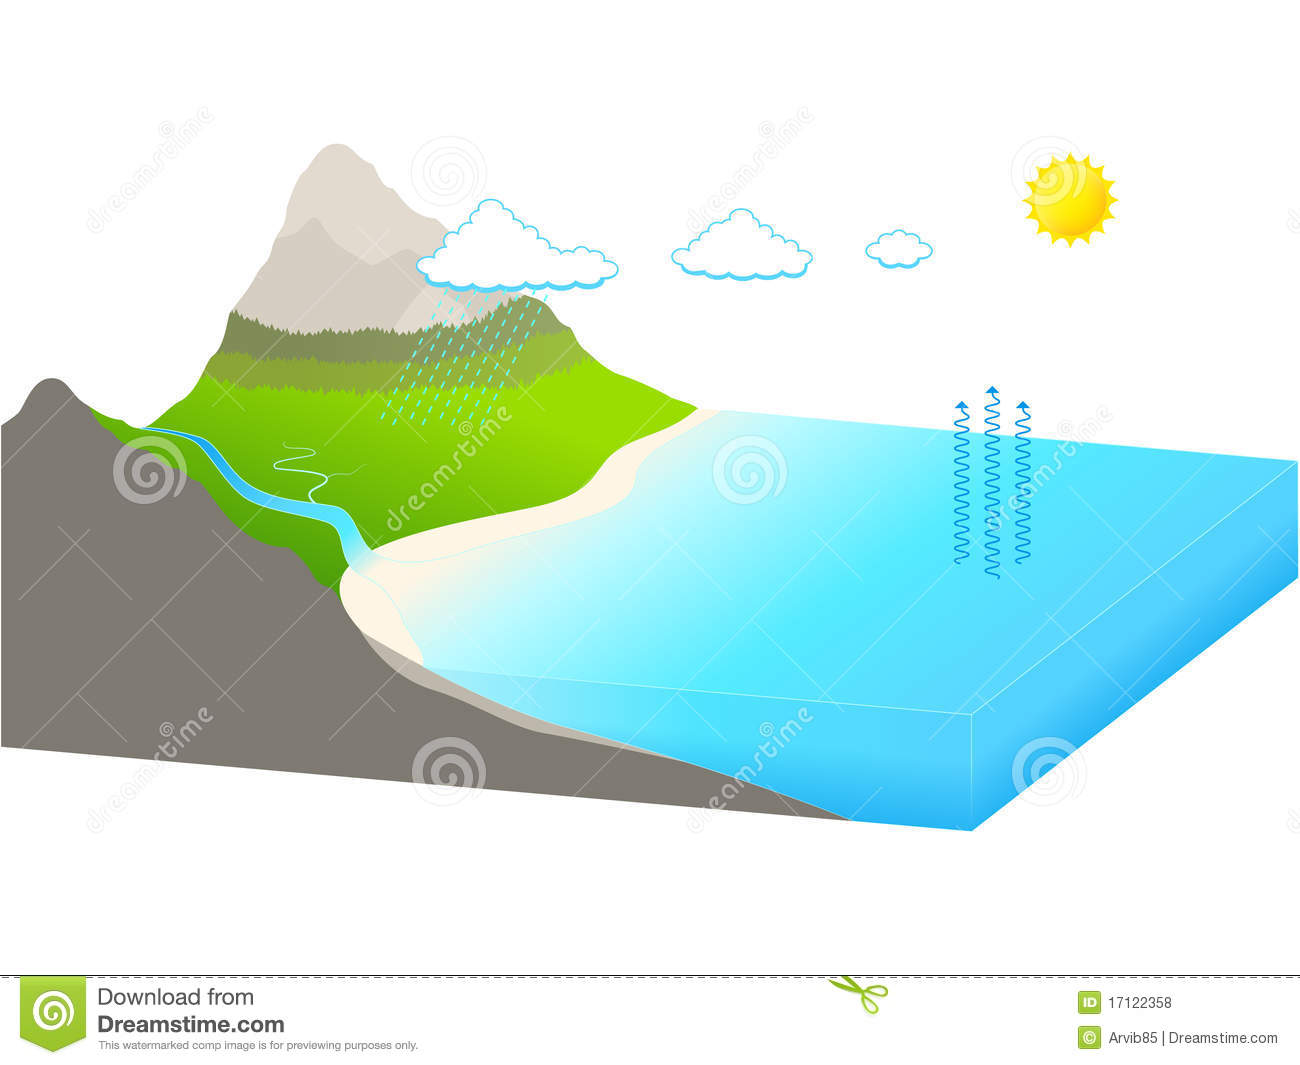 Collection water cycle clipart clipart library Water Cycle Clip Art #1LSVAf - Clipart Kid clipart library